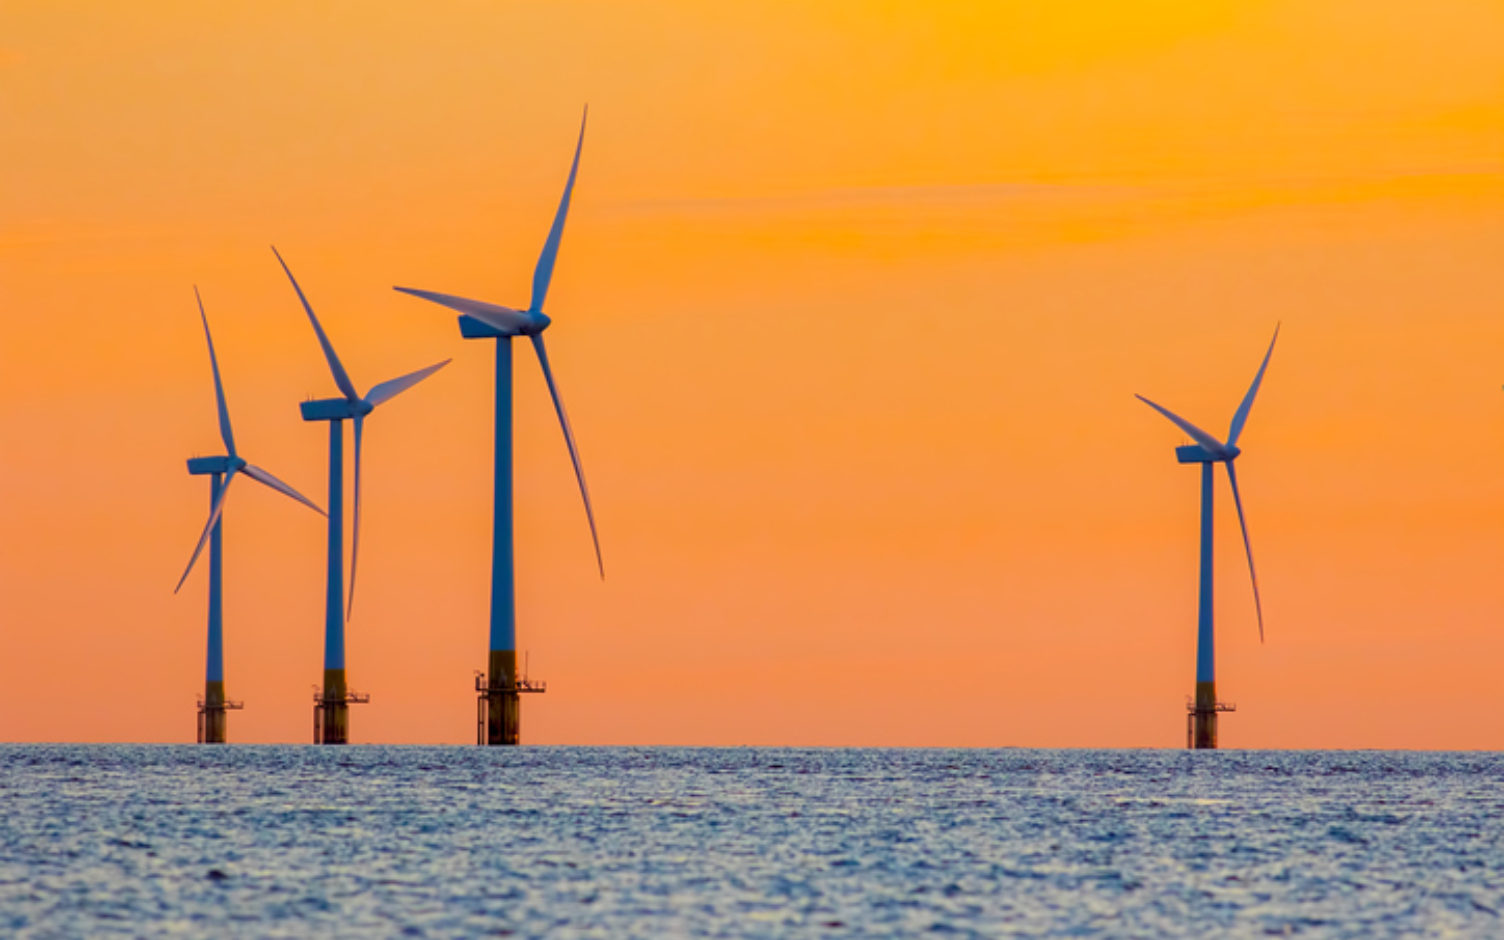 Revaluating the future route to market for low carbon technologies